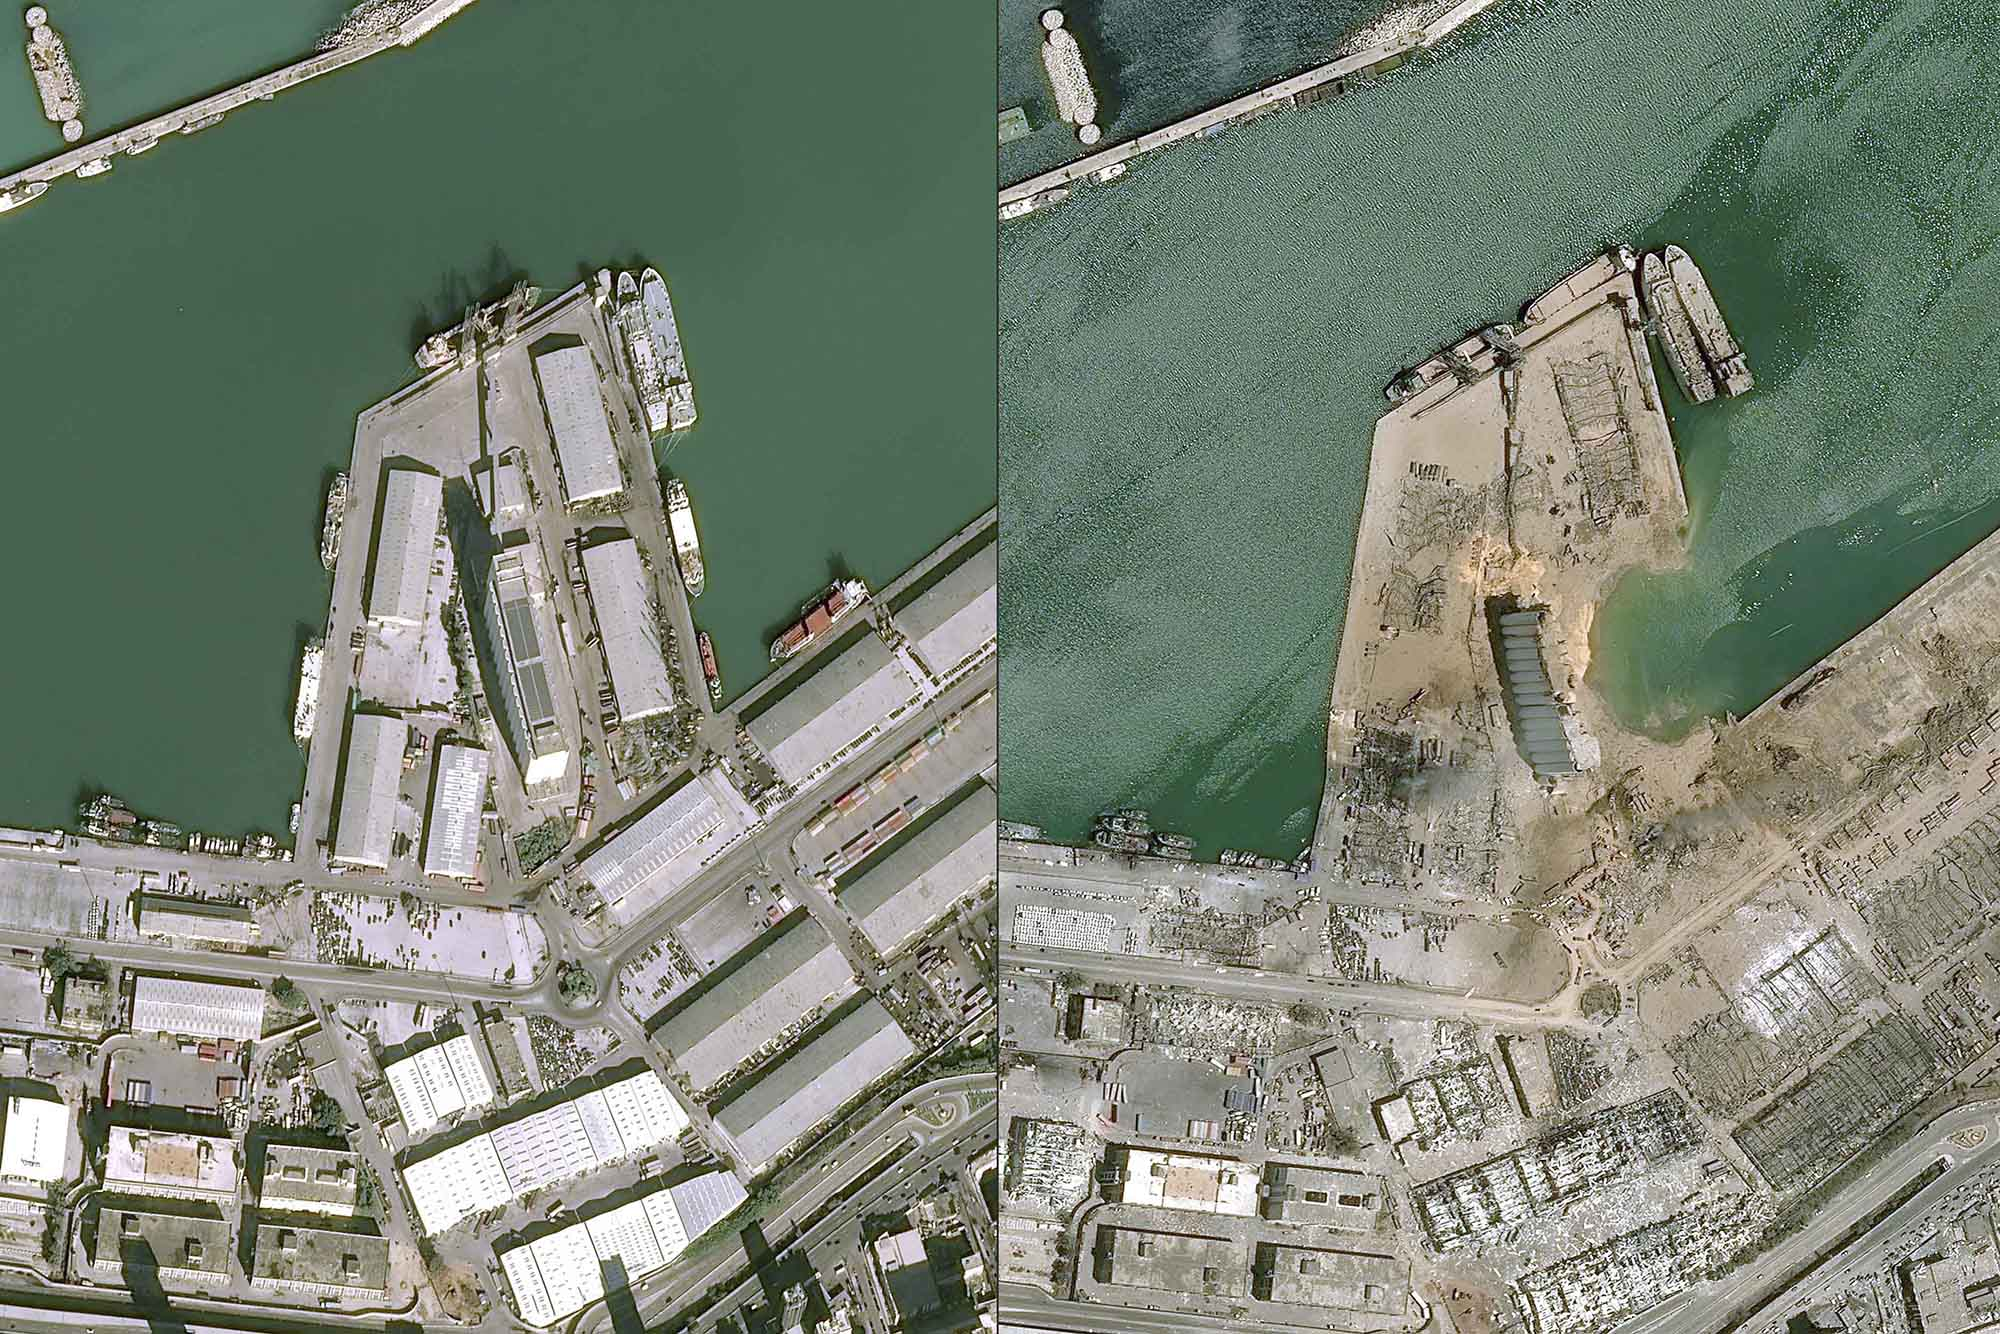 """This combo of handout satellite images courtesy of Cnes 2020 released on August 5, 2020 by Airbus DS shows a view of the port of Beirut on January 25, 2020 (L) and on August 5, 2020 a day after a blast in a warehouse in the port of the Lebanese capital sowed devastation across entire city neighbourhoods, killing more than 100 people, wounding thousands and plunging Lebanon deeper into crisis. - The blast, which appeared to have been caused by a fire igniting 2,750 tonnes of ammonium nitrate left unsecured in a warehouse, was felt as far away as the island of Cyprus, some 150 miles (240 kilometres) away. Beirut's governor Marwan Abboud spoke of """"an apocalyptic situation"""" he said may have made 300,000 people temporarily homeless and would cost the country over $3 billion. (Photo by -/CNES/AFP via Getty Images)"""